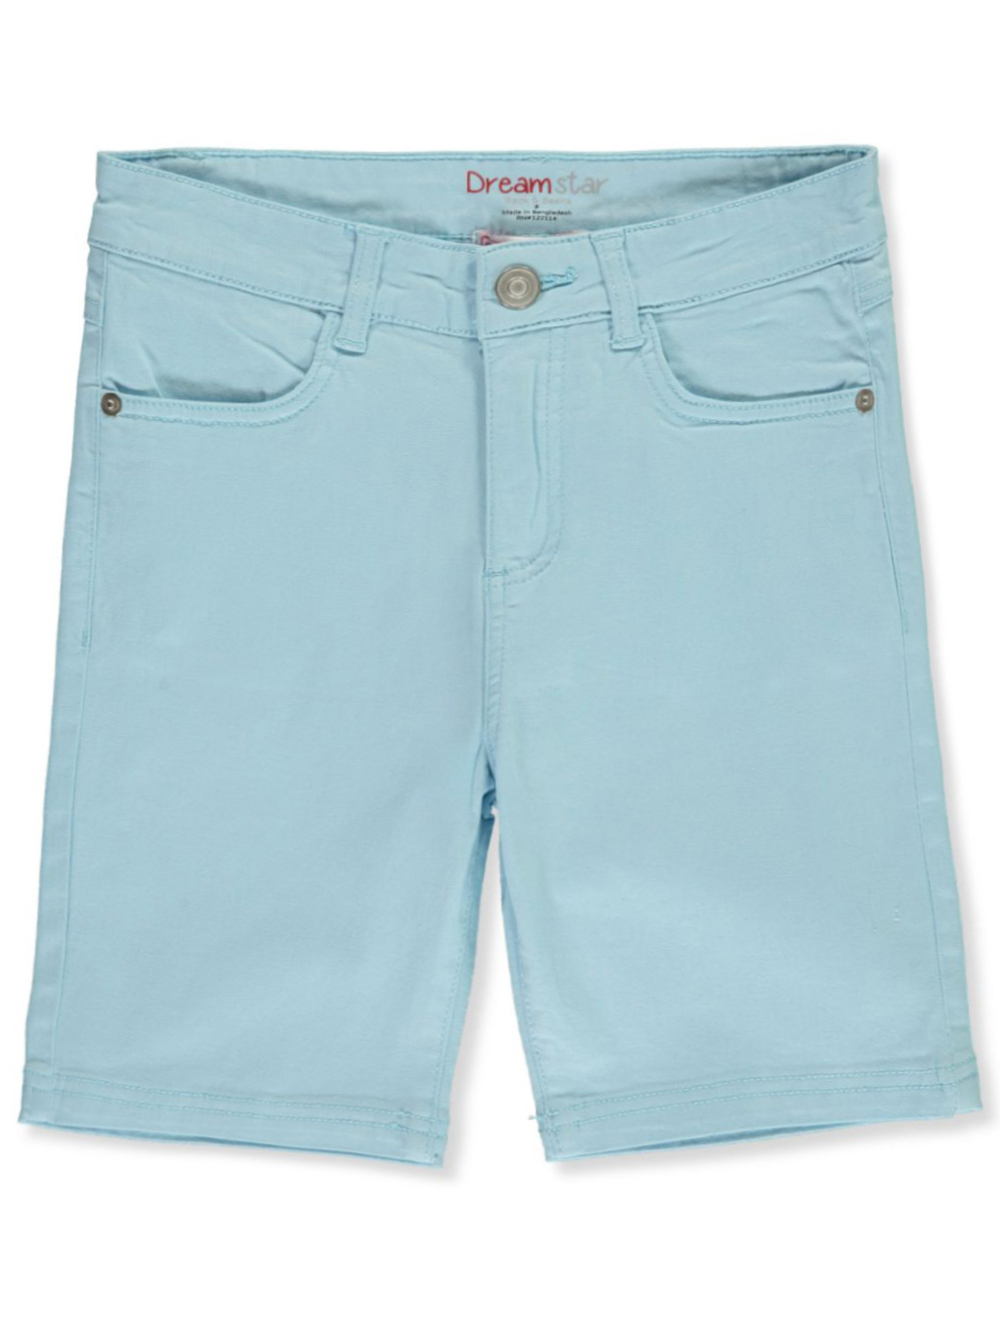 Shorts Dreamstar